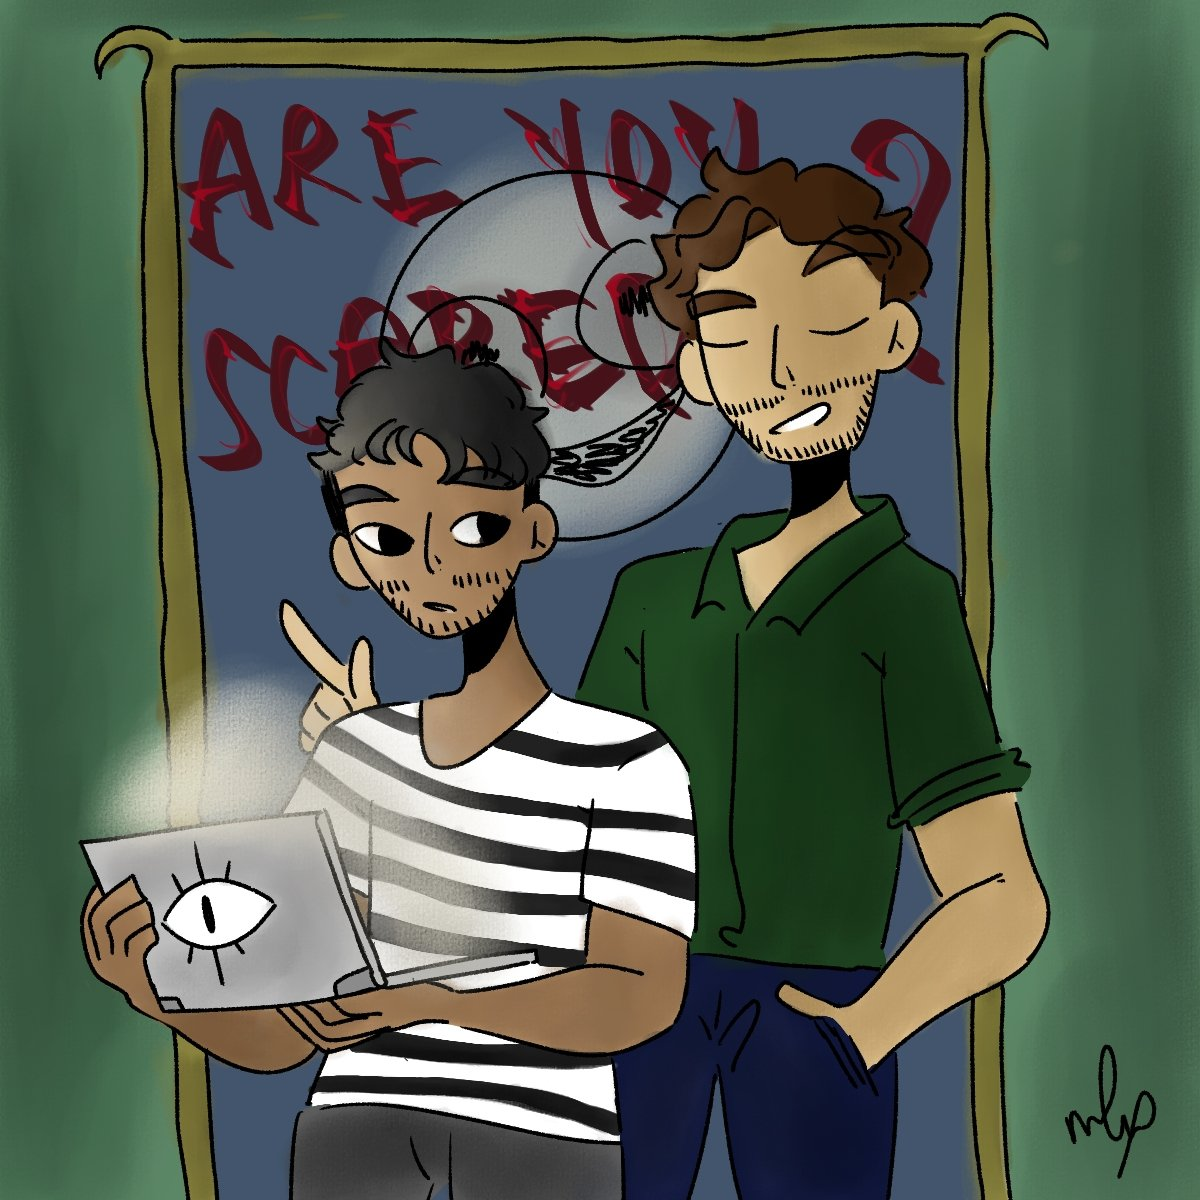 """Happy """"Are You Scared?"""" launch day!! Thank you @wearewatcher for such an amazing pilot episode and I can't wait for more!! Love ya @ryansbergara @shanemadej 😔✊ https://t.co/sCzYR4y7K6"""